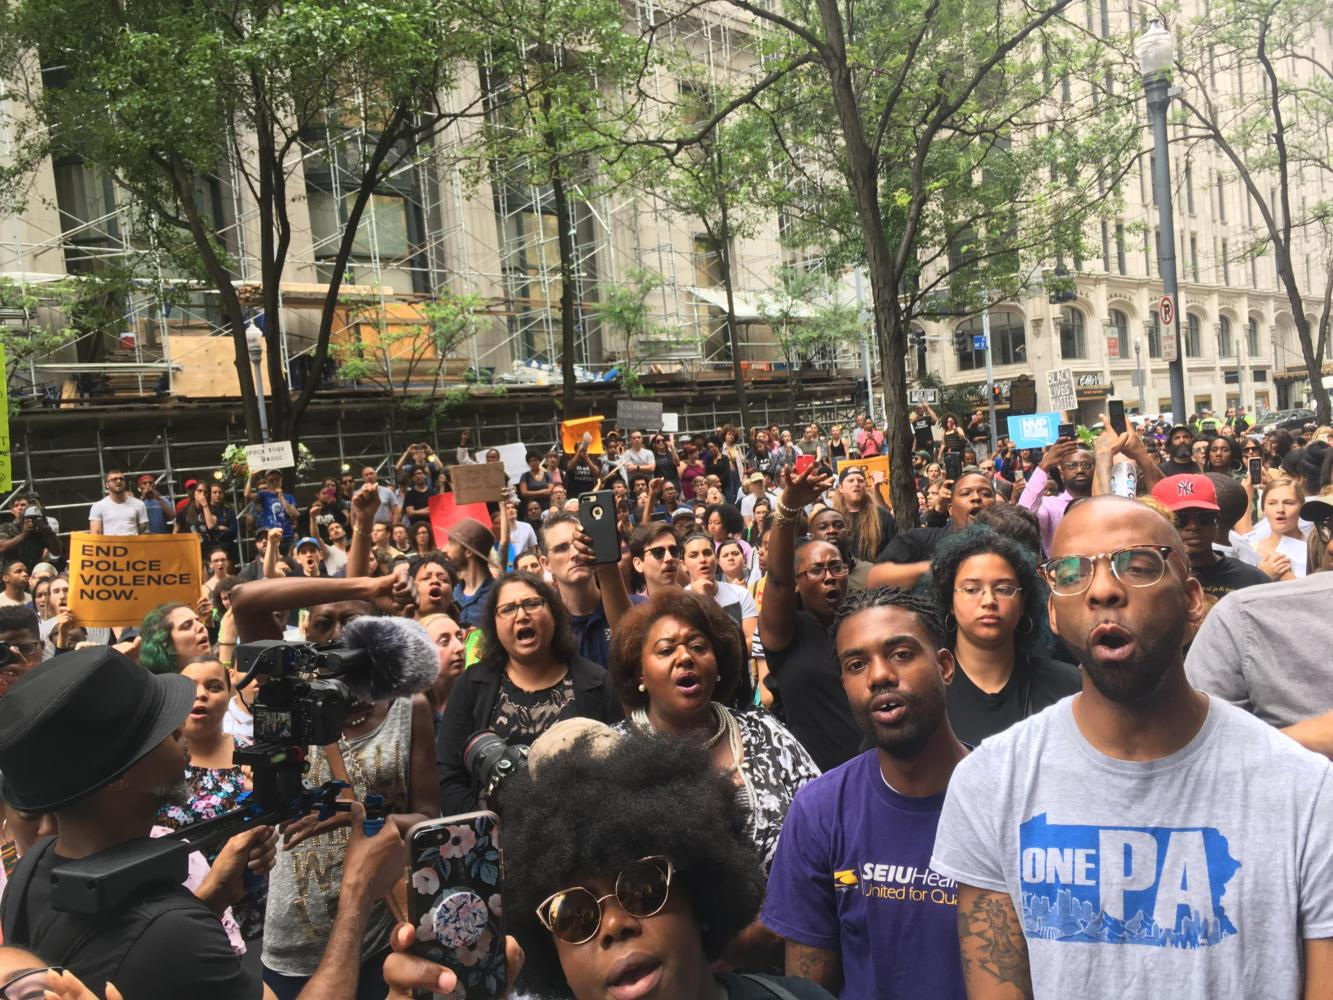 Protesters gathered outside the Allegheny County Courthouse in June to protest Antwon Rose's death. (TPN File Photo)